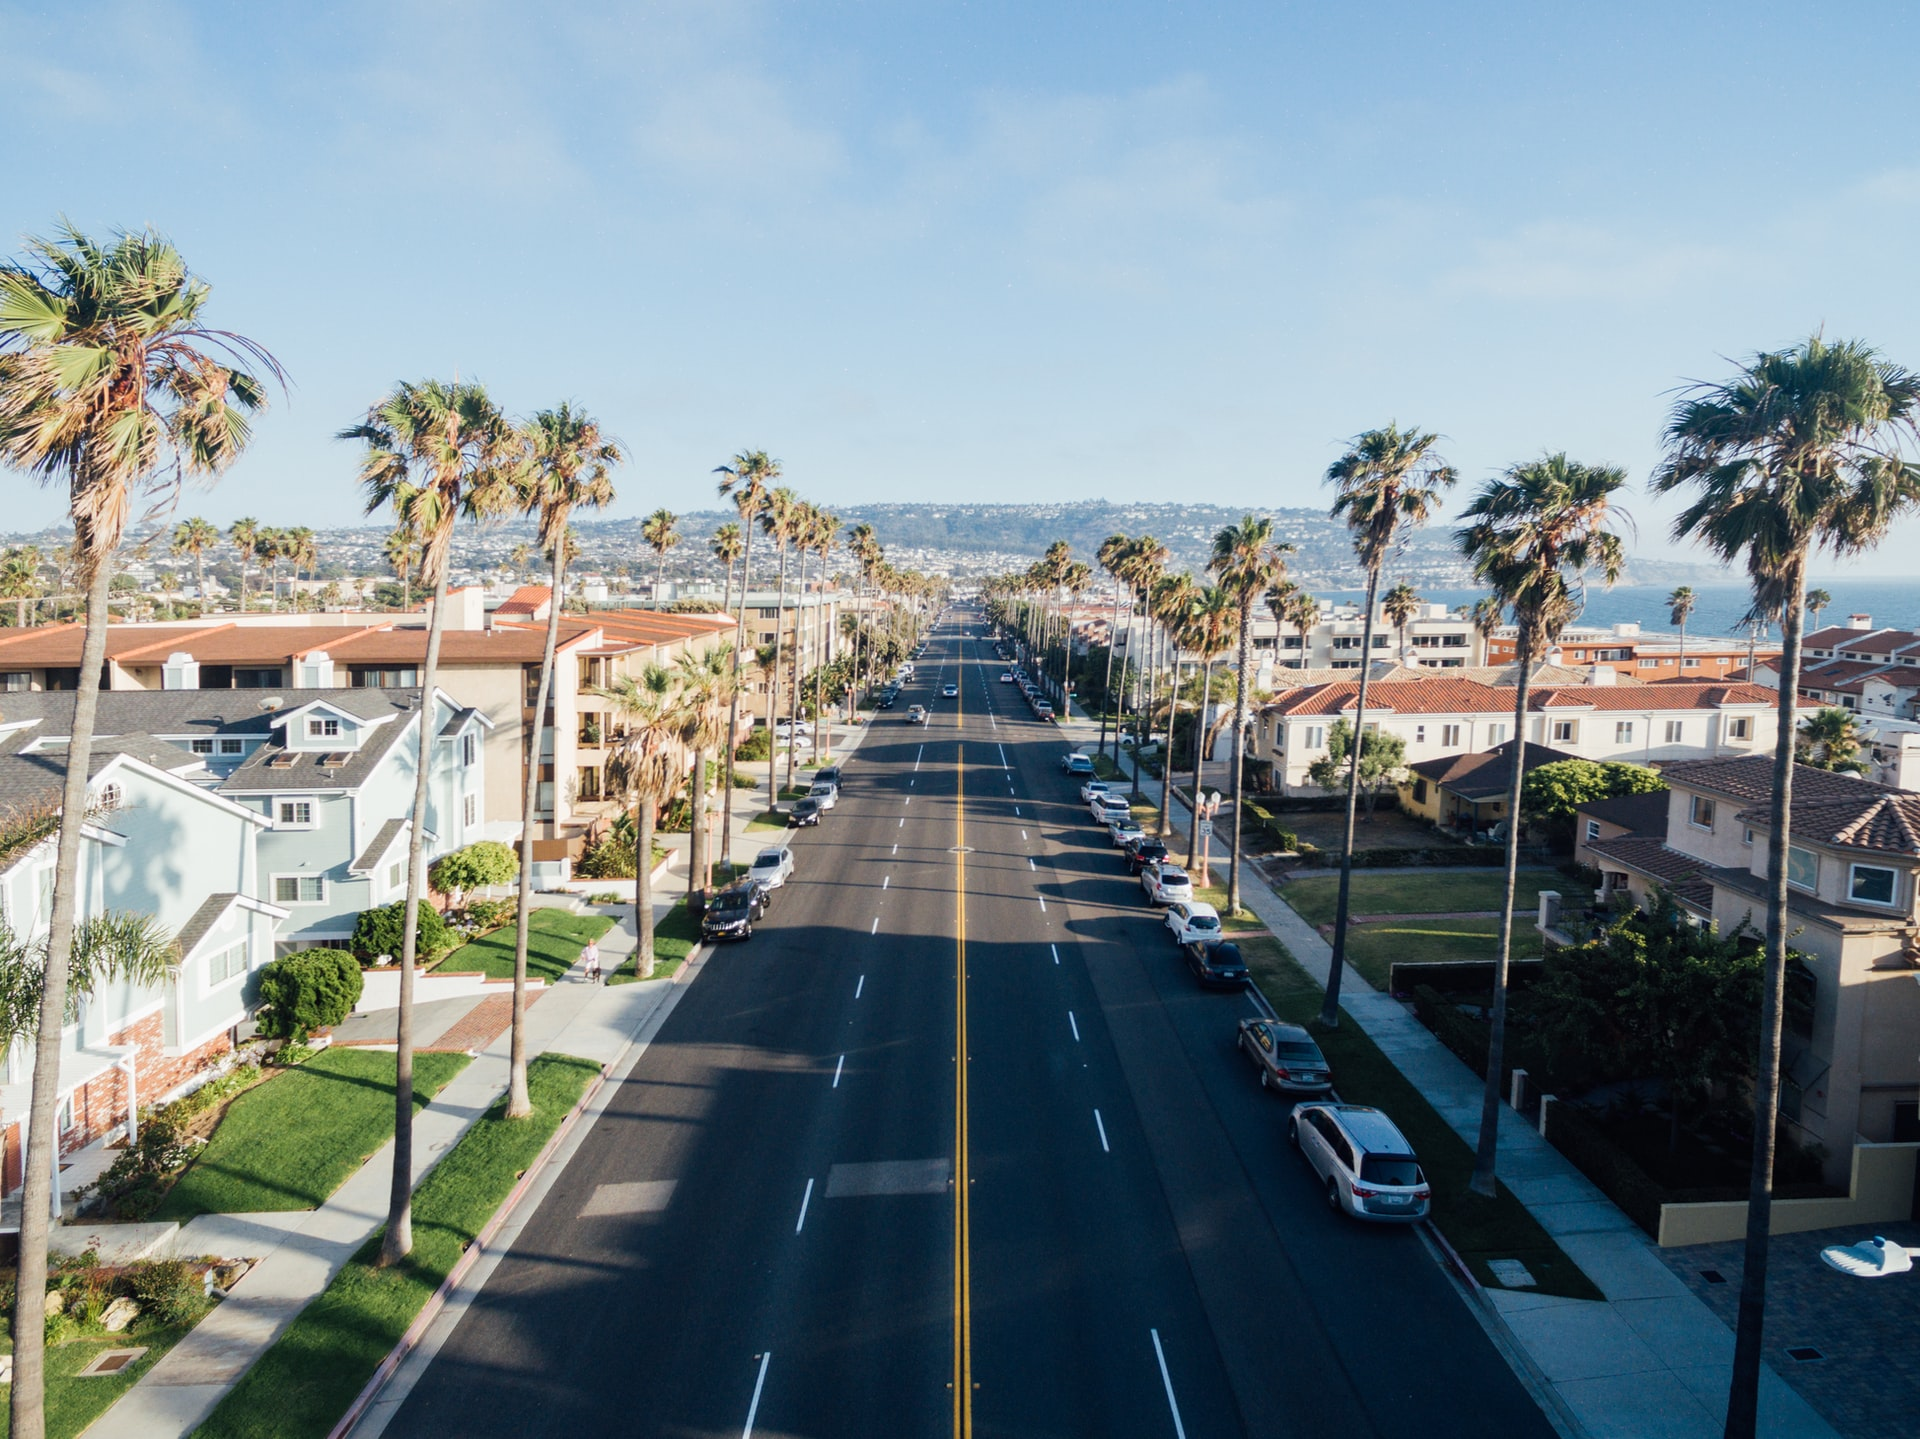 Aerial shot of Redondo Beach street in California, lined with houses and palm trees. Photo courtesy of Paul Hanaoka on Unsplash.